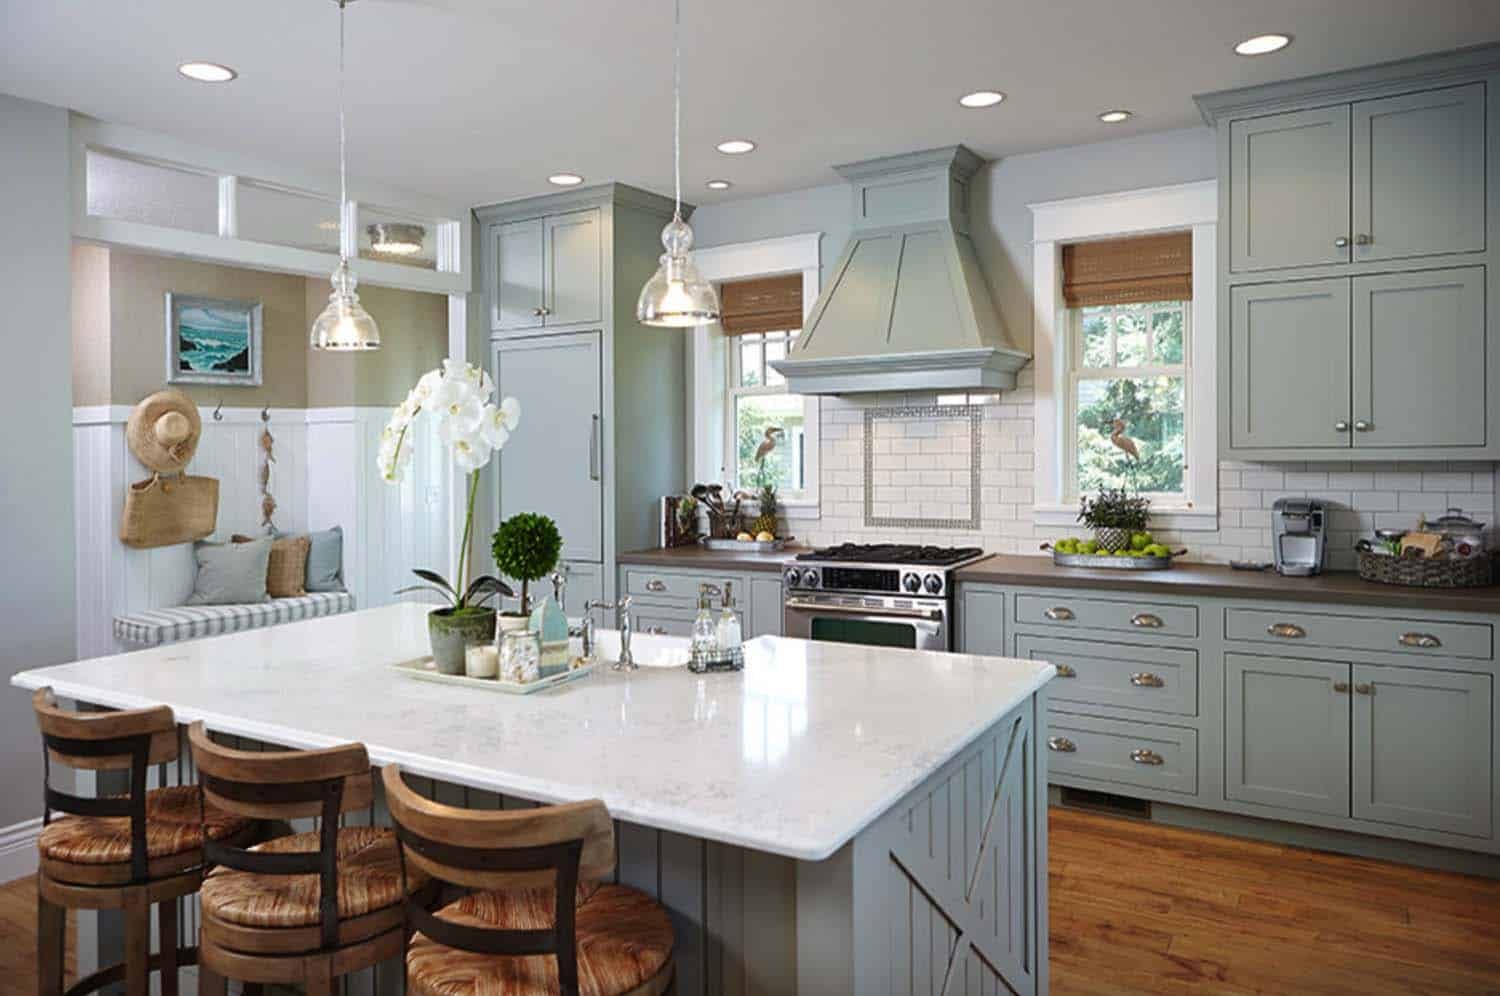 Beach Style Kitchen Cabinets Stunning Beach Style Cottage Designed For Family Living In